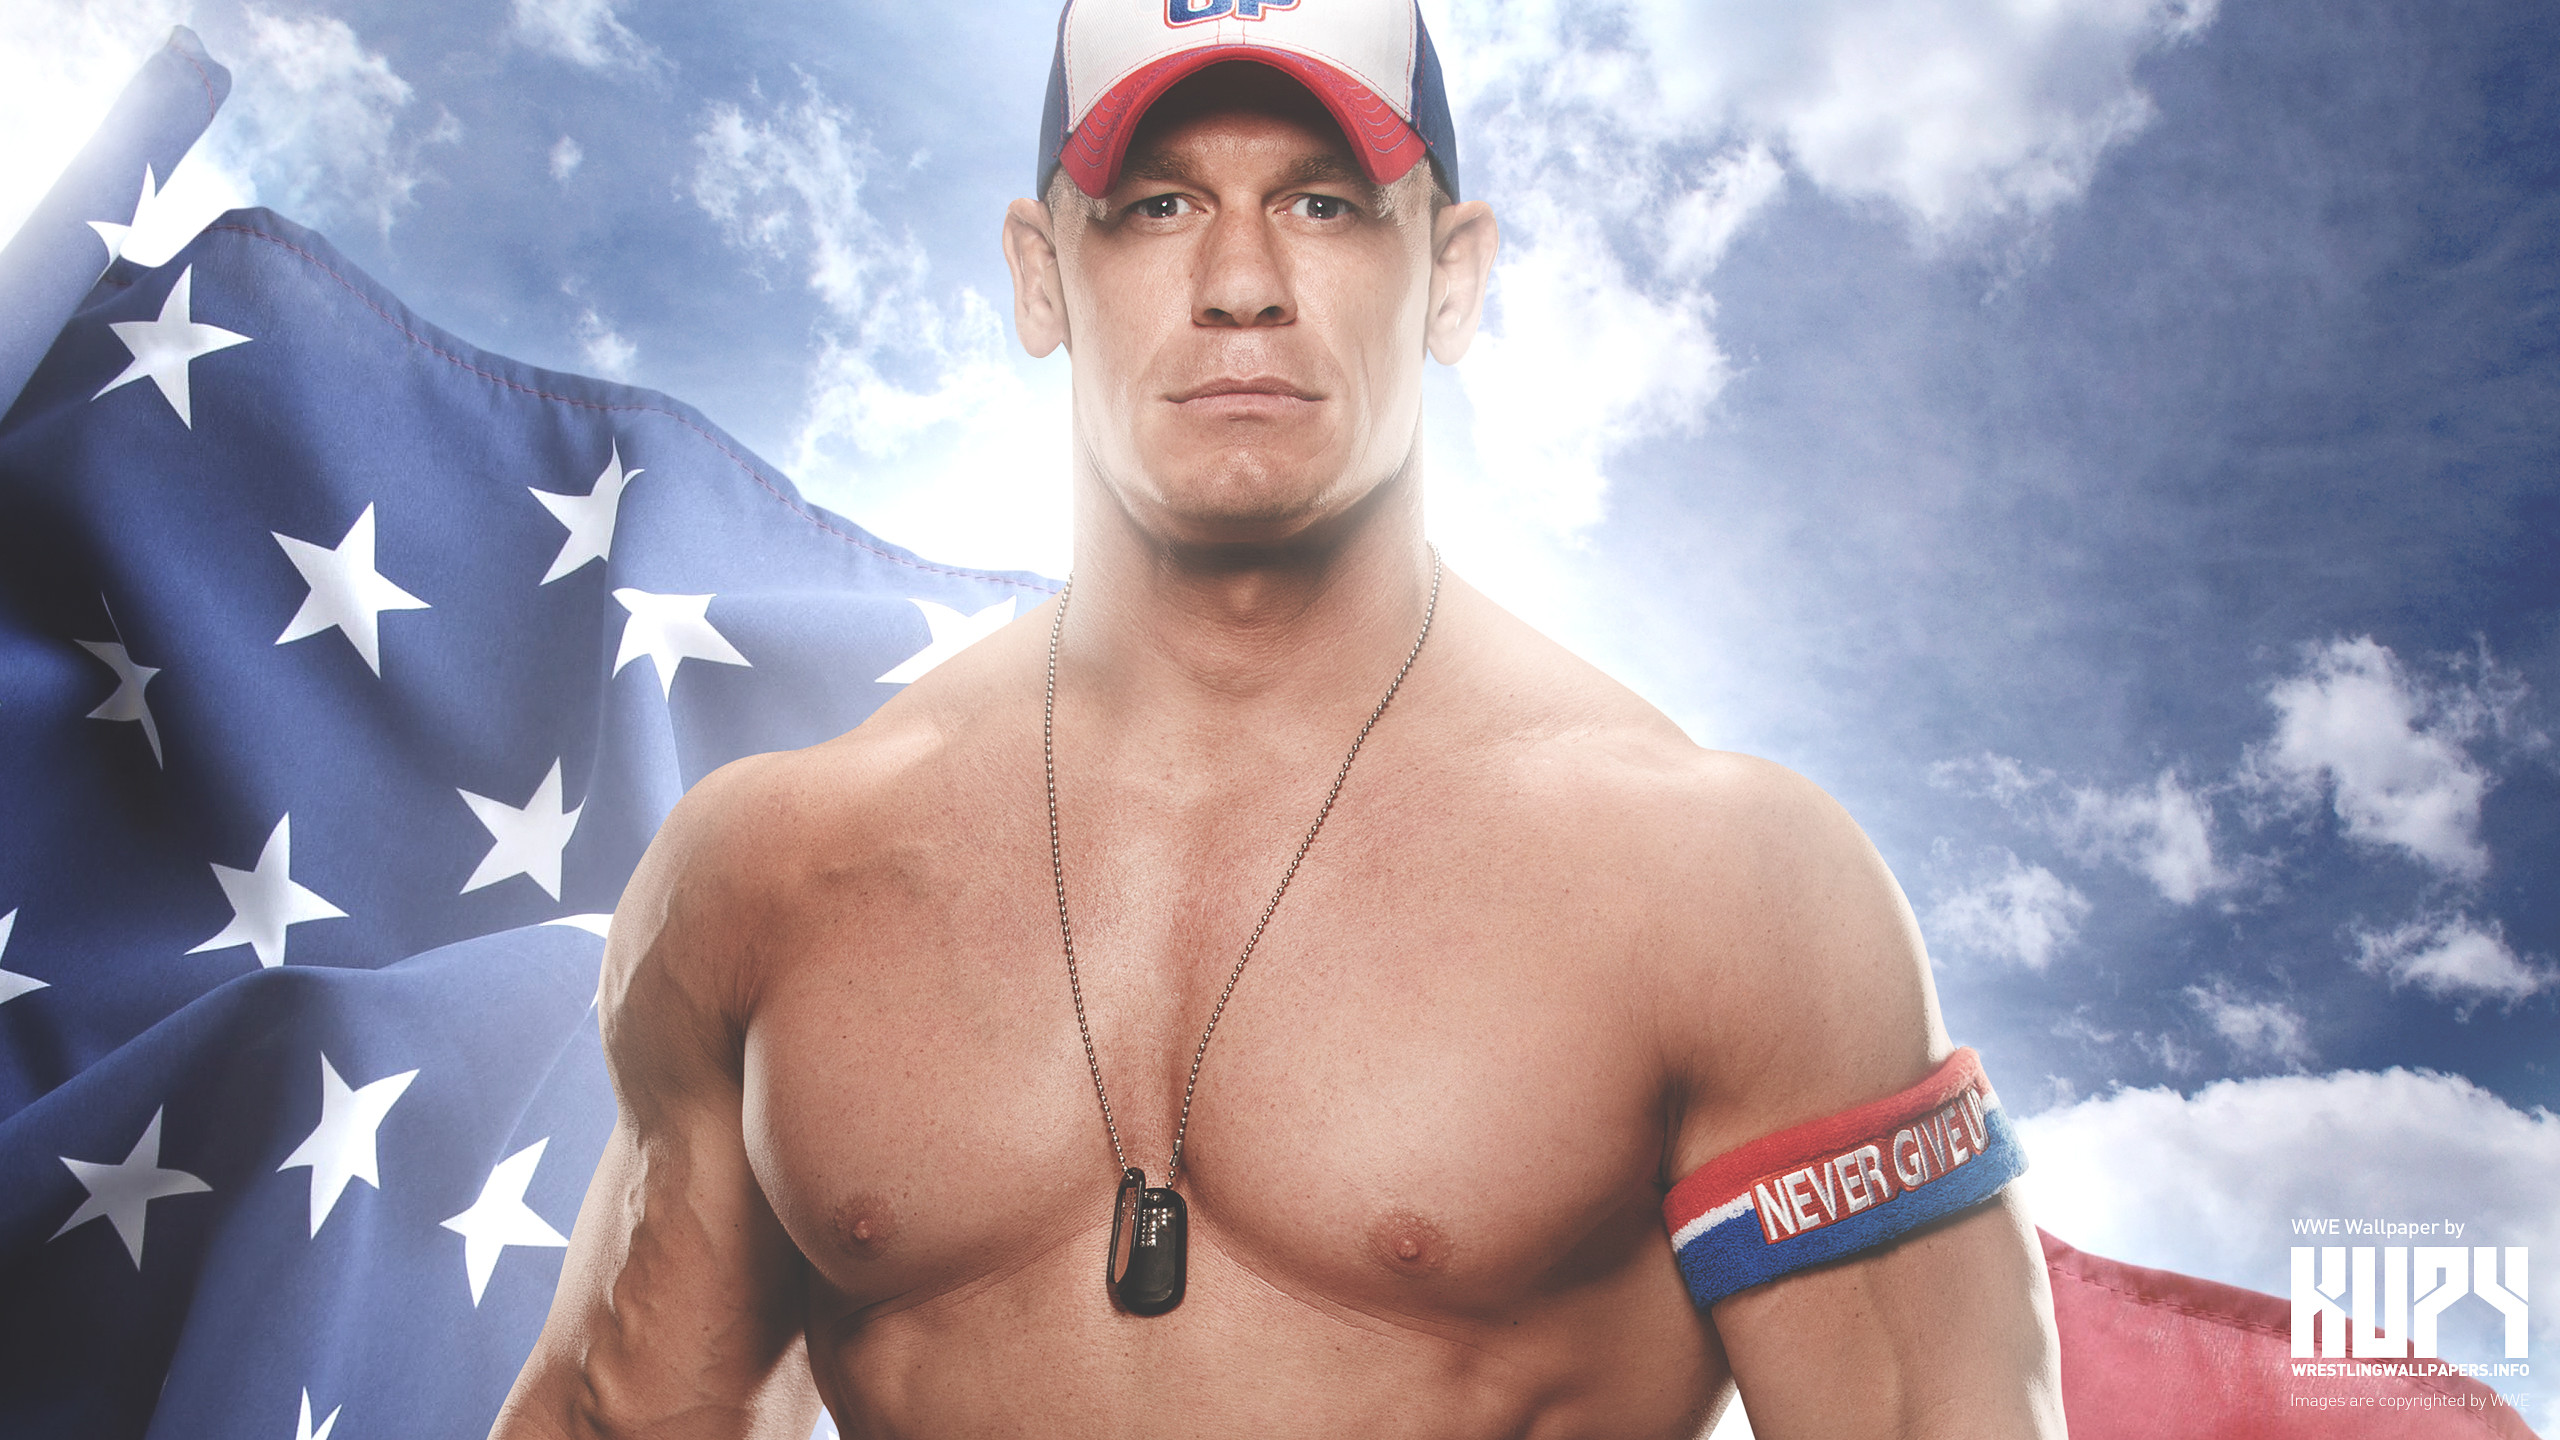 John Cena 2017 Hd Wallpapers